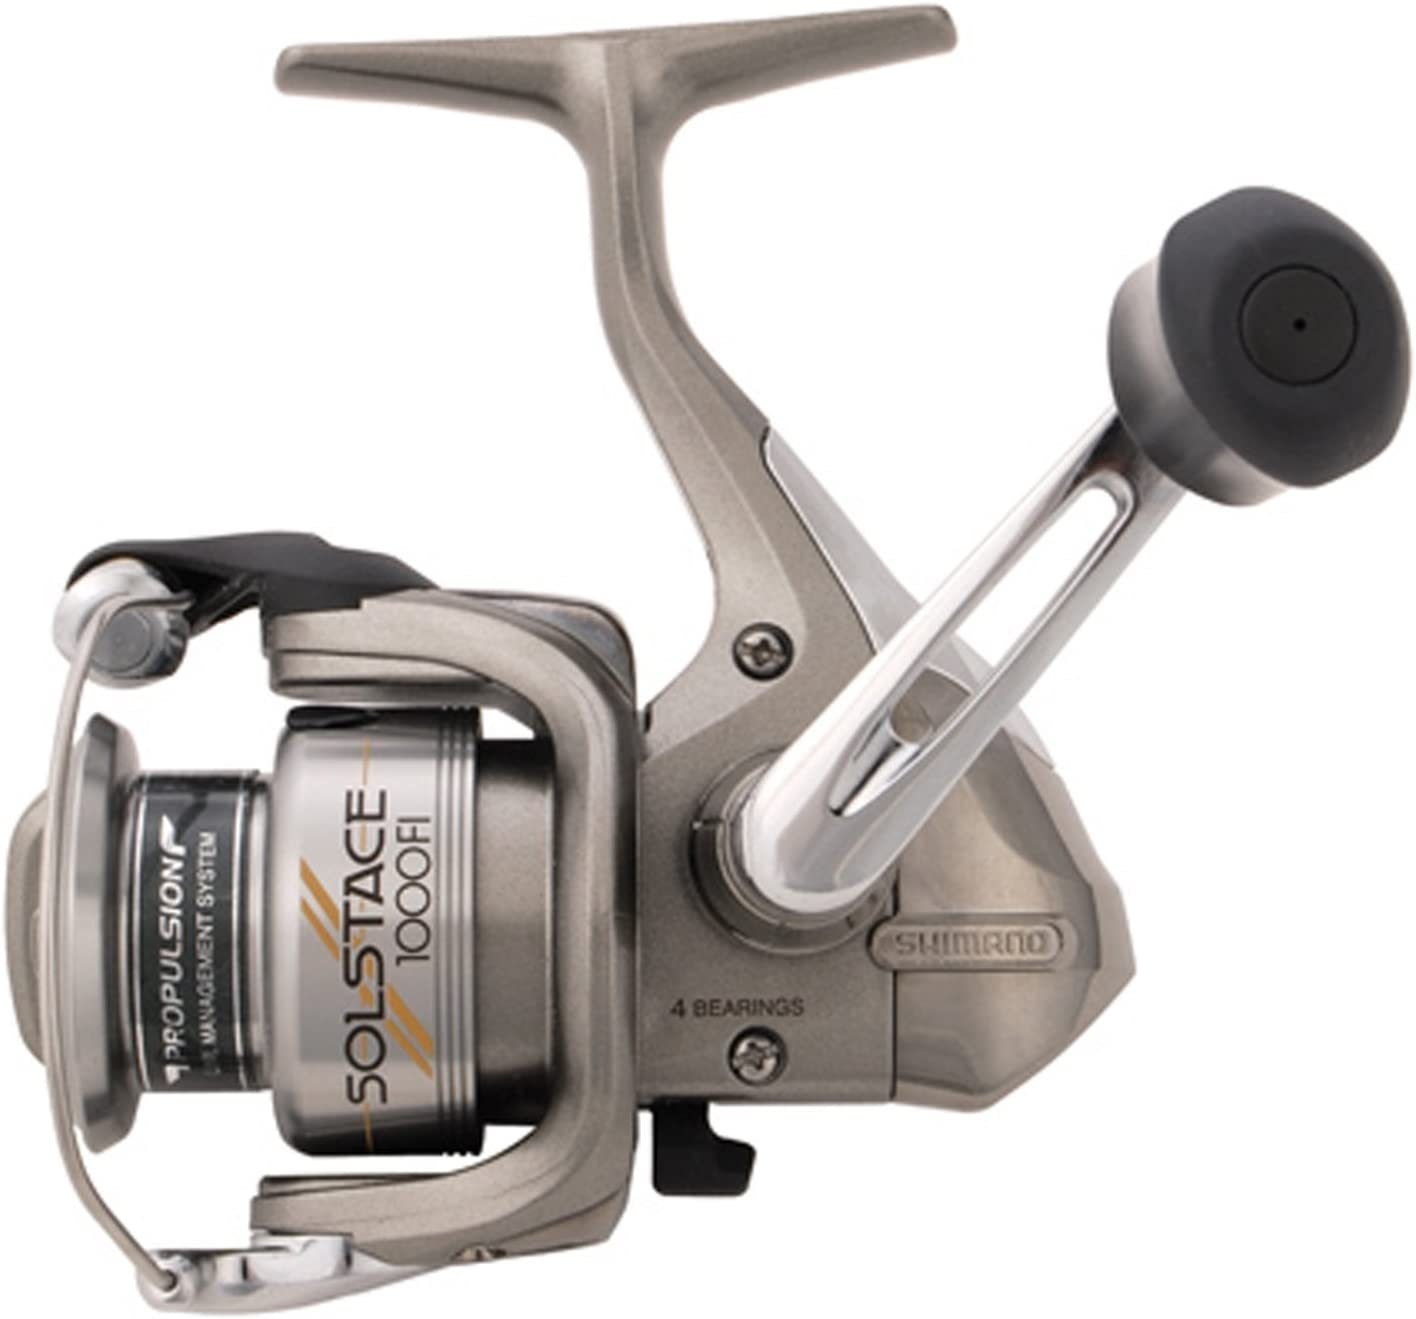 SHIMANO solstace Fi Spinning Carrete (6.2: 1) - SO1000FI, Gris ...